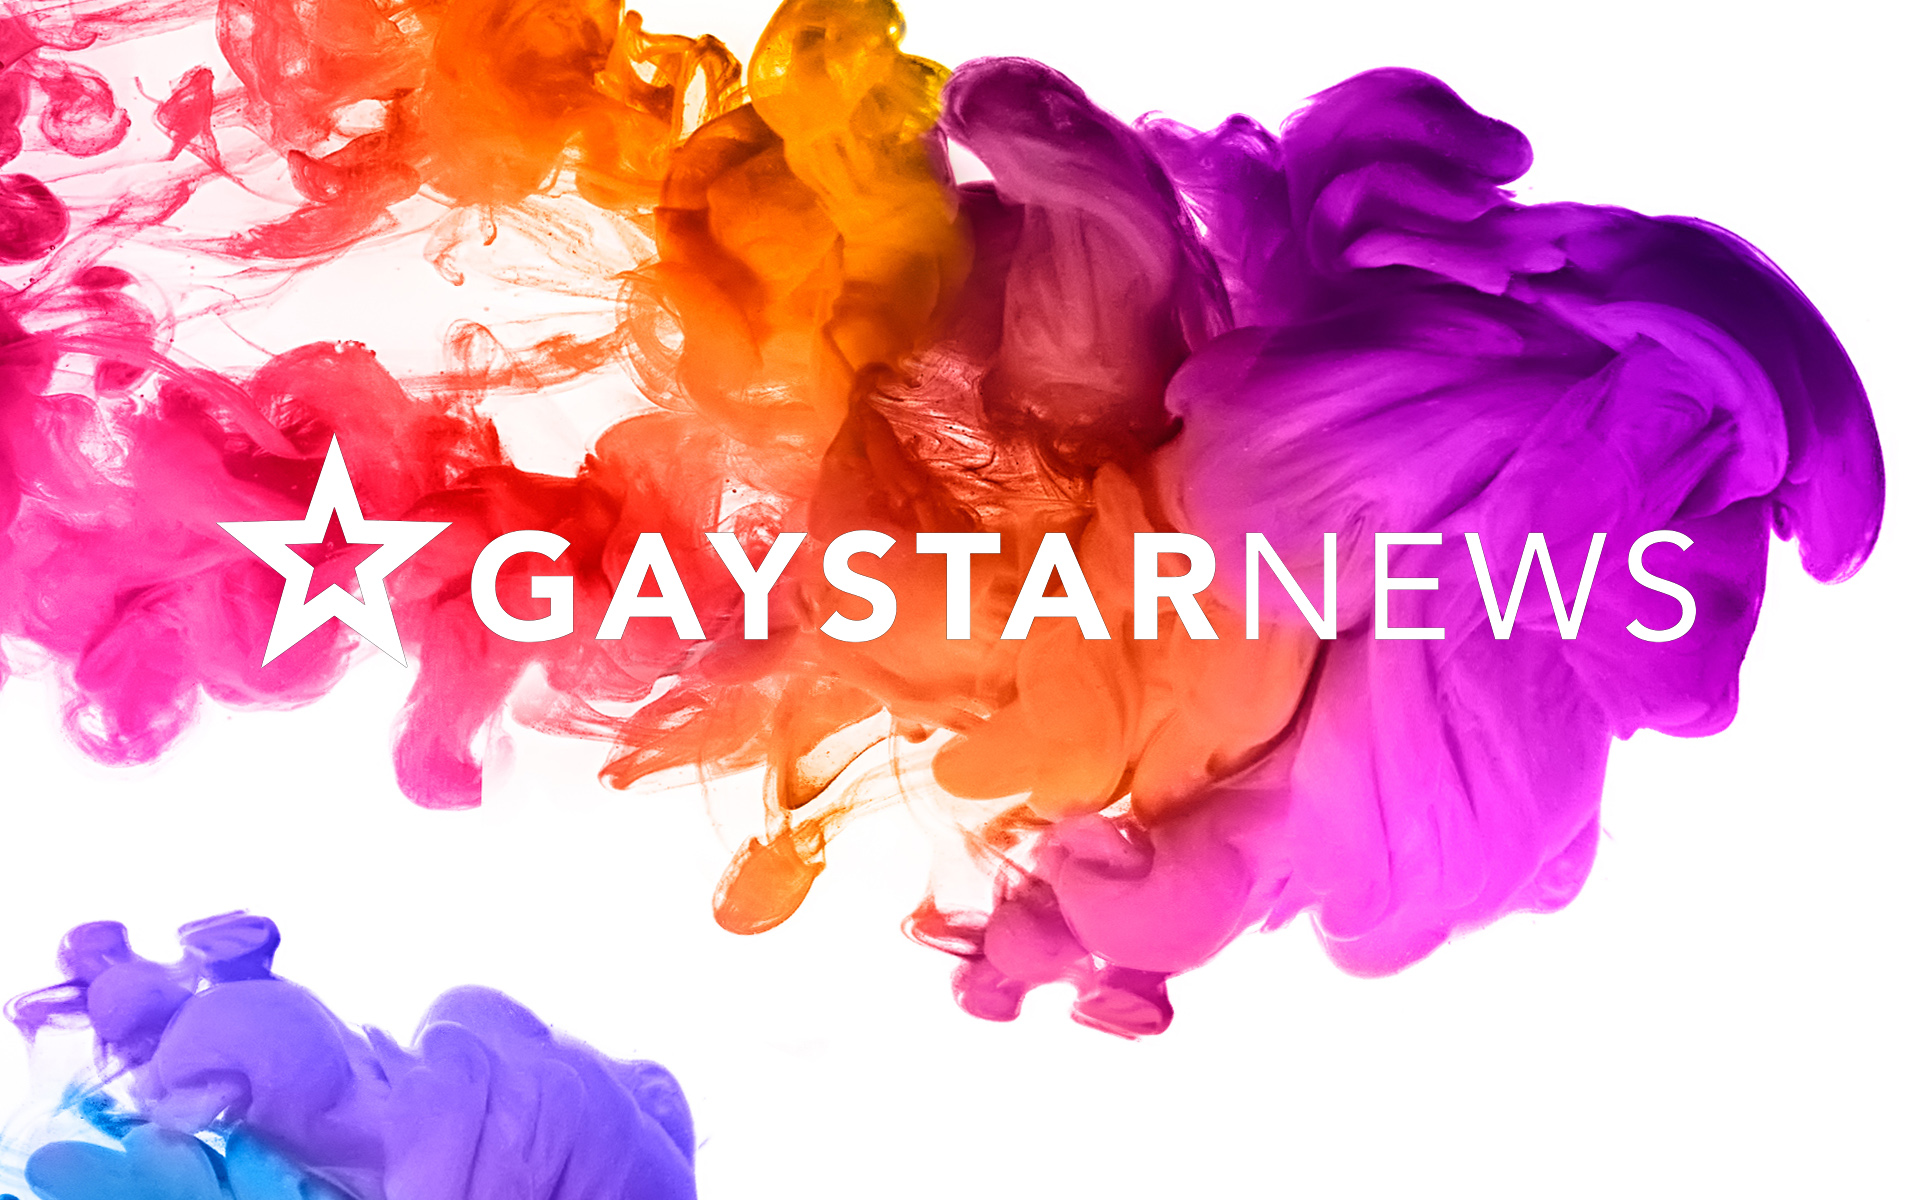 Gay Star News. Image created by Gay Star News